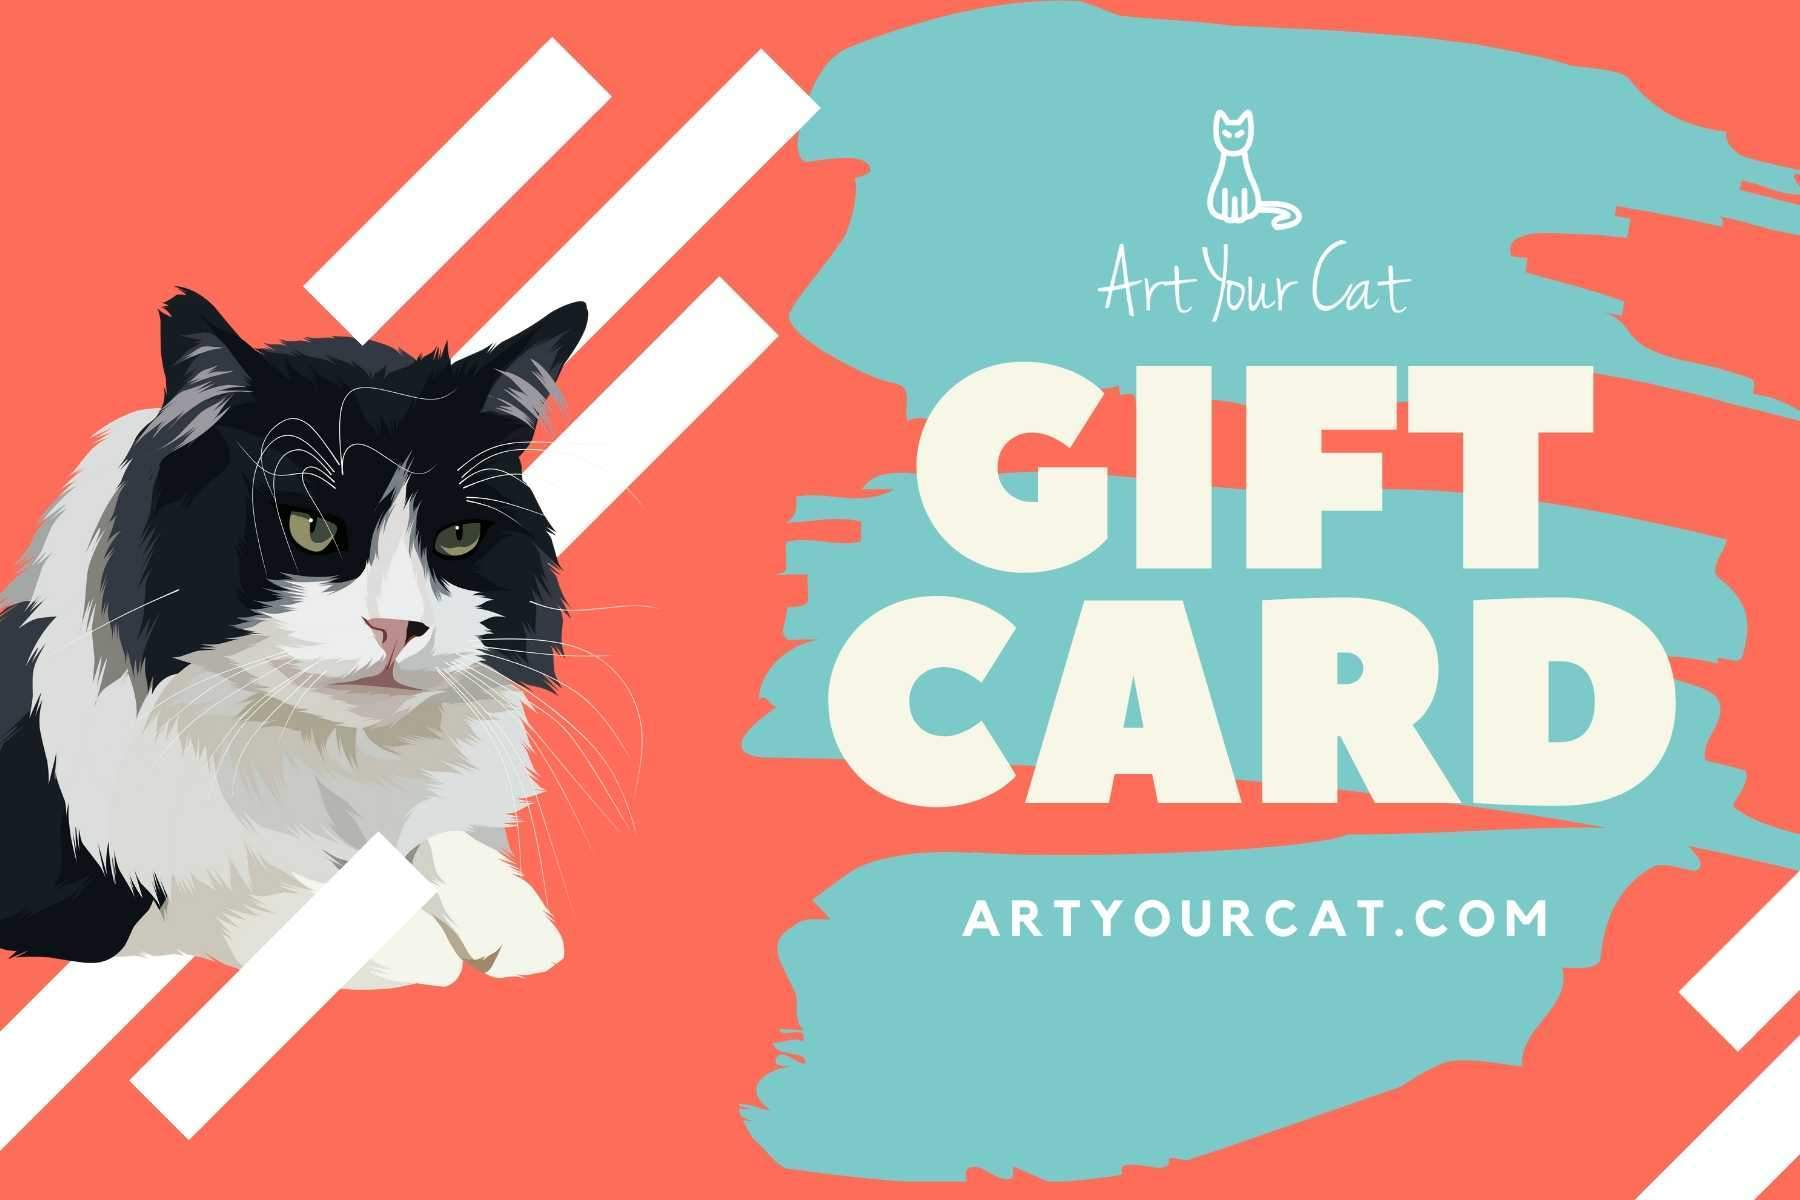 Art Your Cat Gift Card